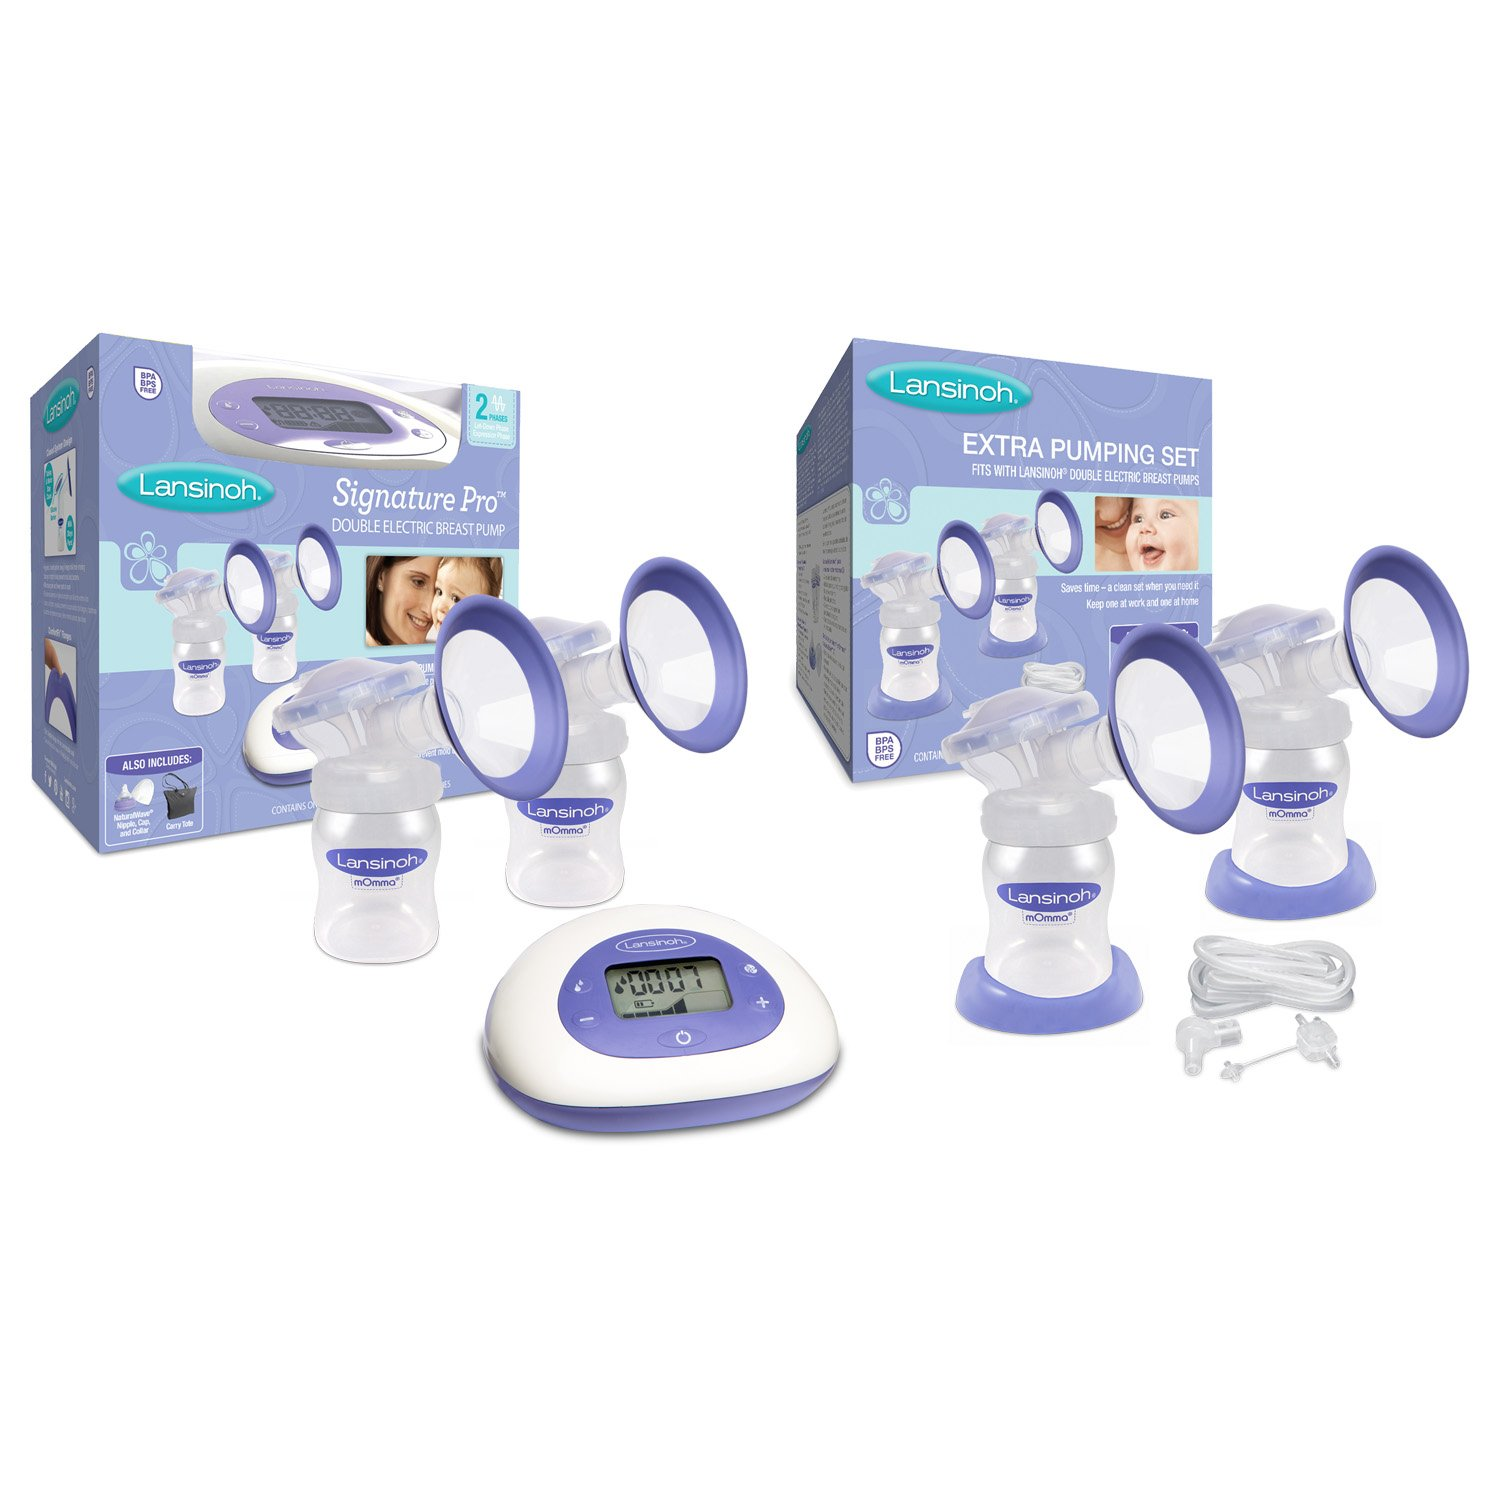 Lansinoh Signature Pro Double Electric Breast Pump with Extra Pumping Set, LCD Screen, Hygienic Closed System, Adjustable Suction Levels and Customizable Pumping Styles For Maximum Milk Production